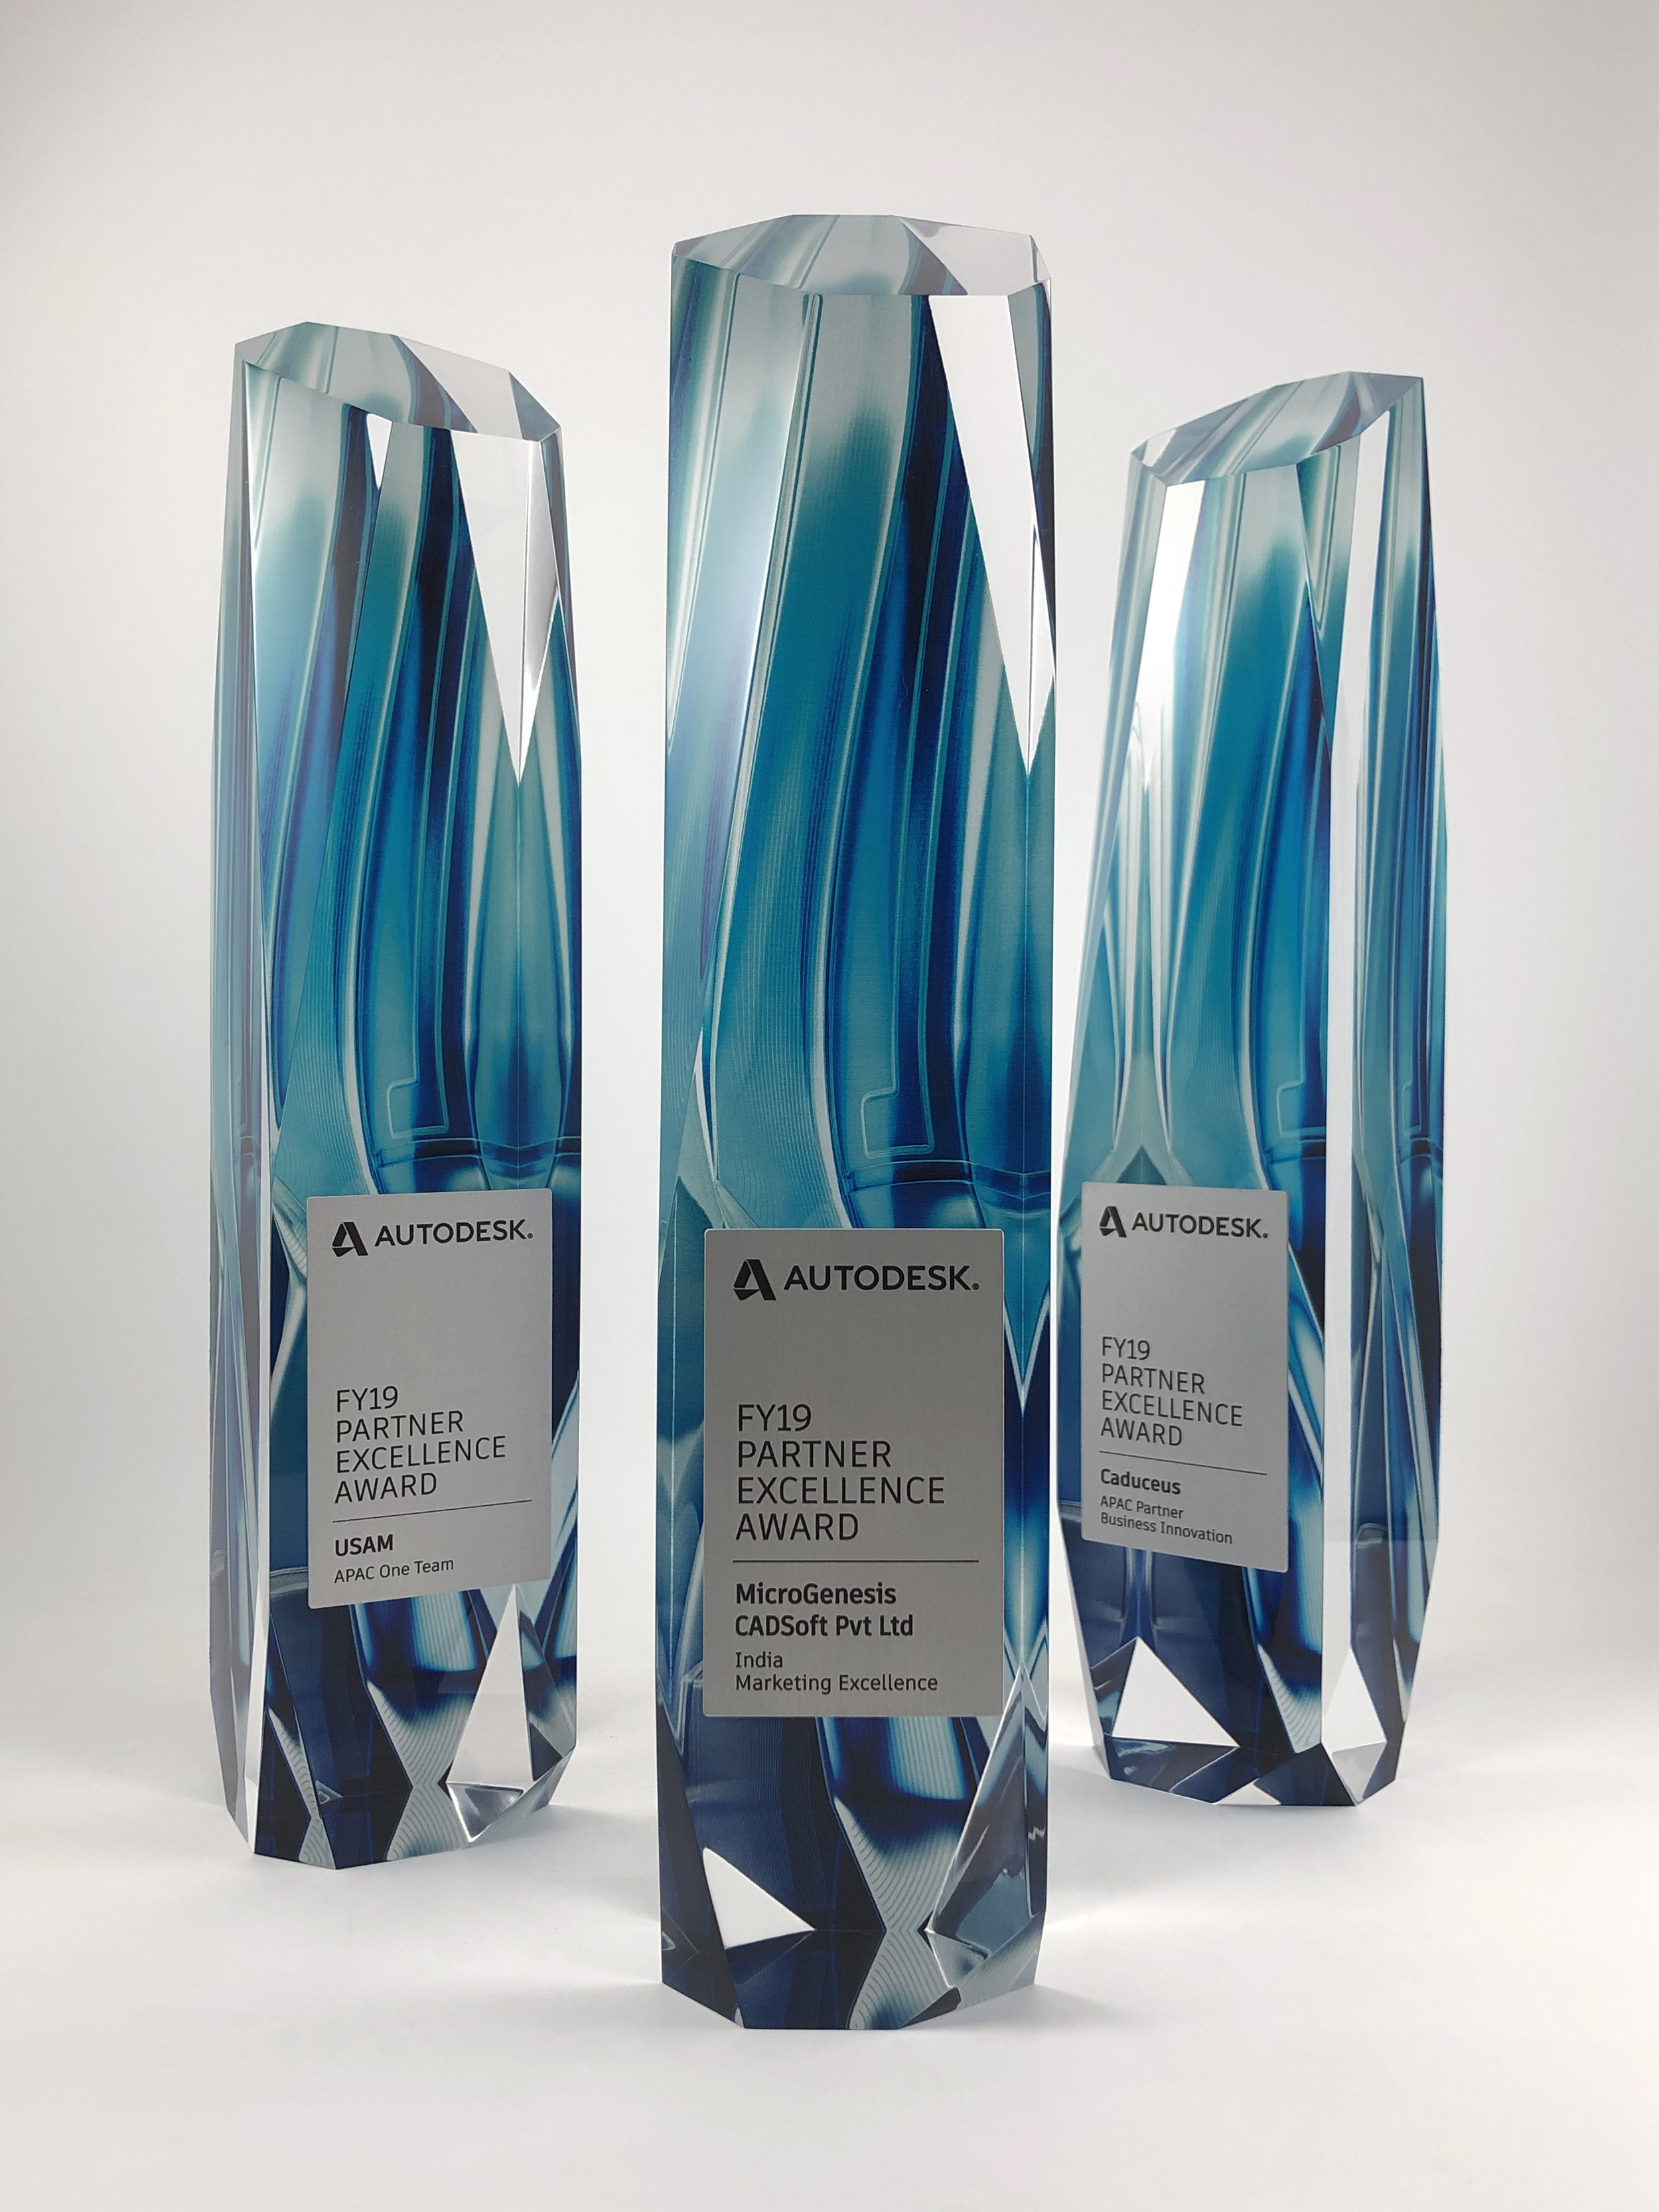 autodesck-apac-partner-excellence-awards-acrylic-graphic-art-trophy-08.jpg